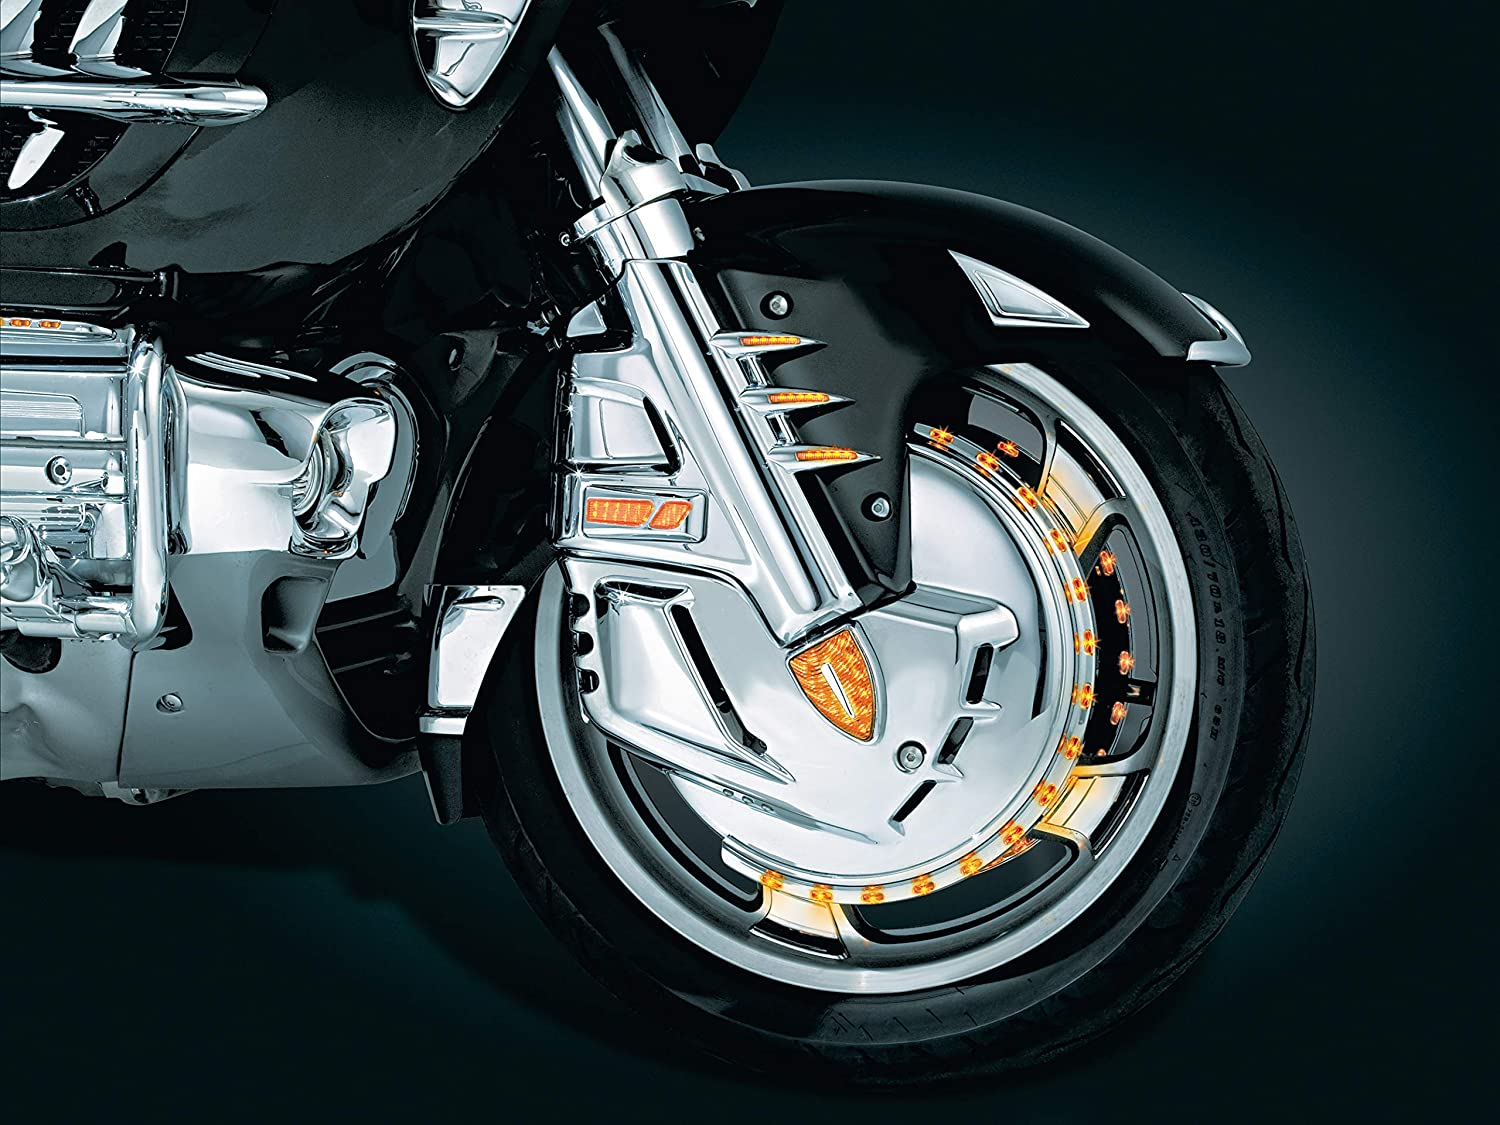 and Valkyrie Motorcycles F6B Kuryakyn 7321 Motorcycle Accessory: Front Fender Accent Tip for Honda Gold Wing GL1800 Chrome